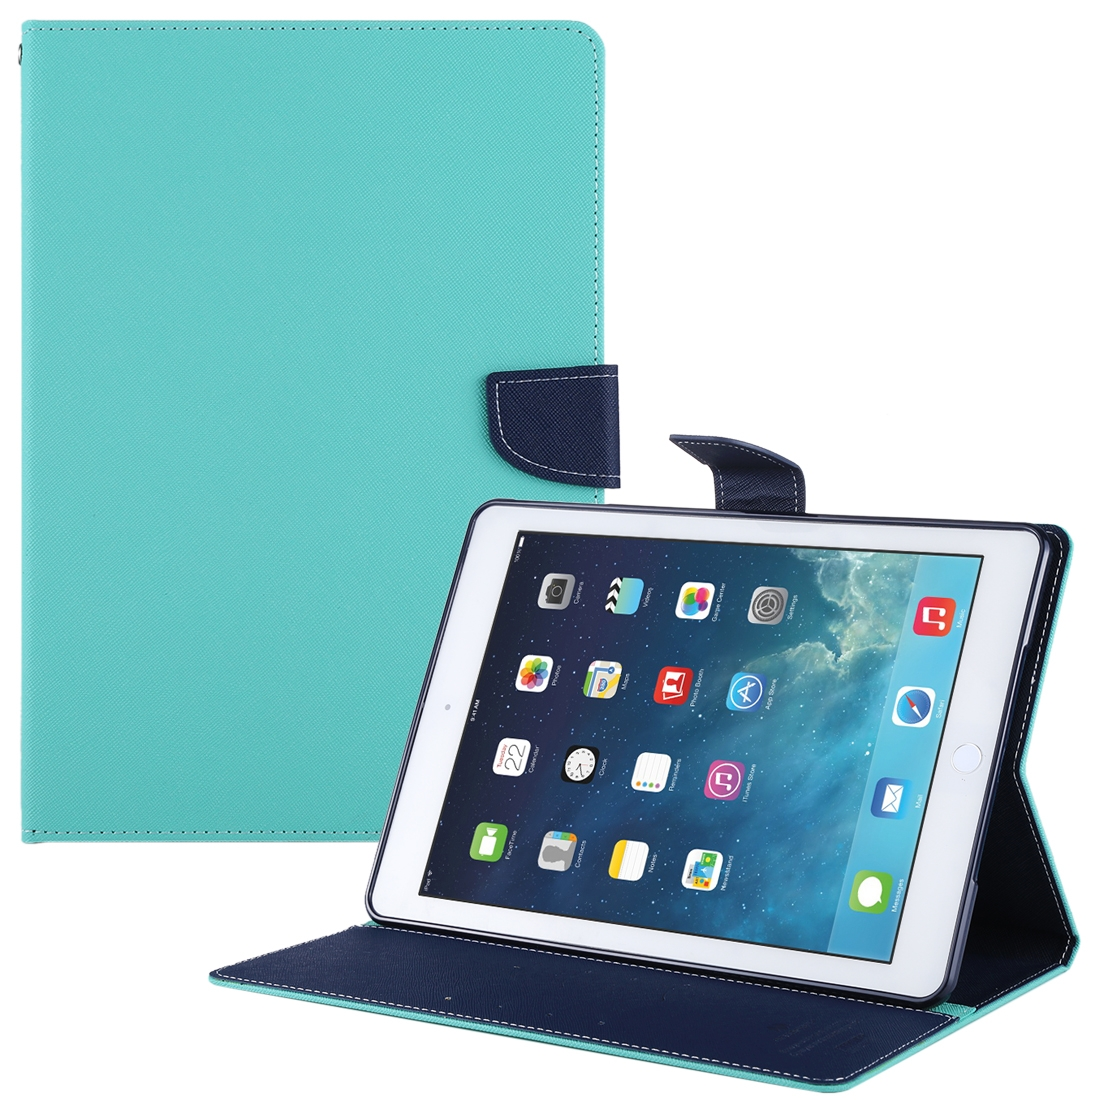 Goospery Diary iPad Air Case Cross Texture Leather Case with Sleeve, Wallet Case (Mint Green)